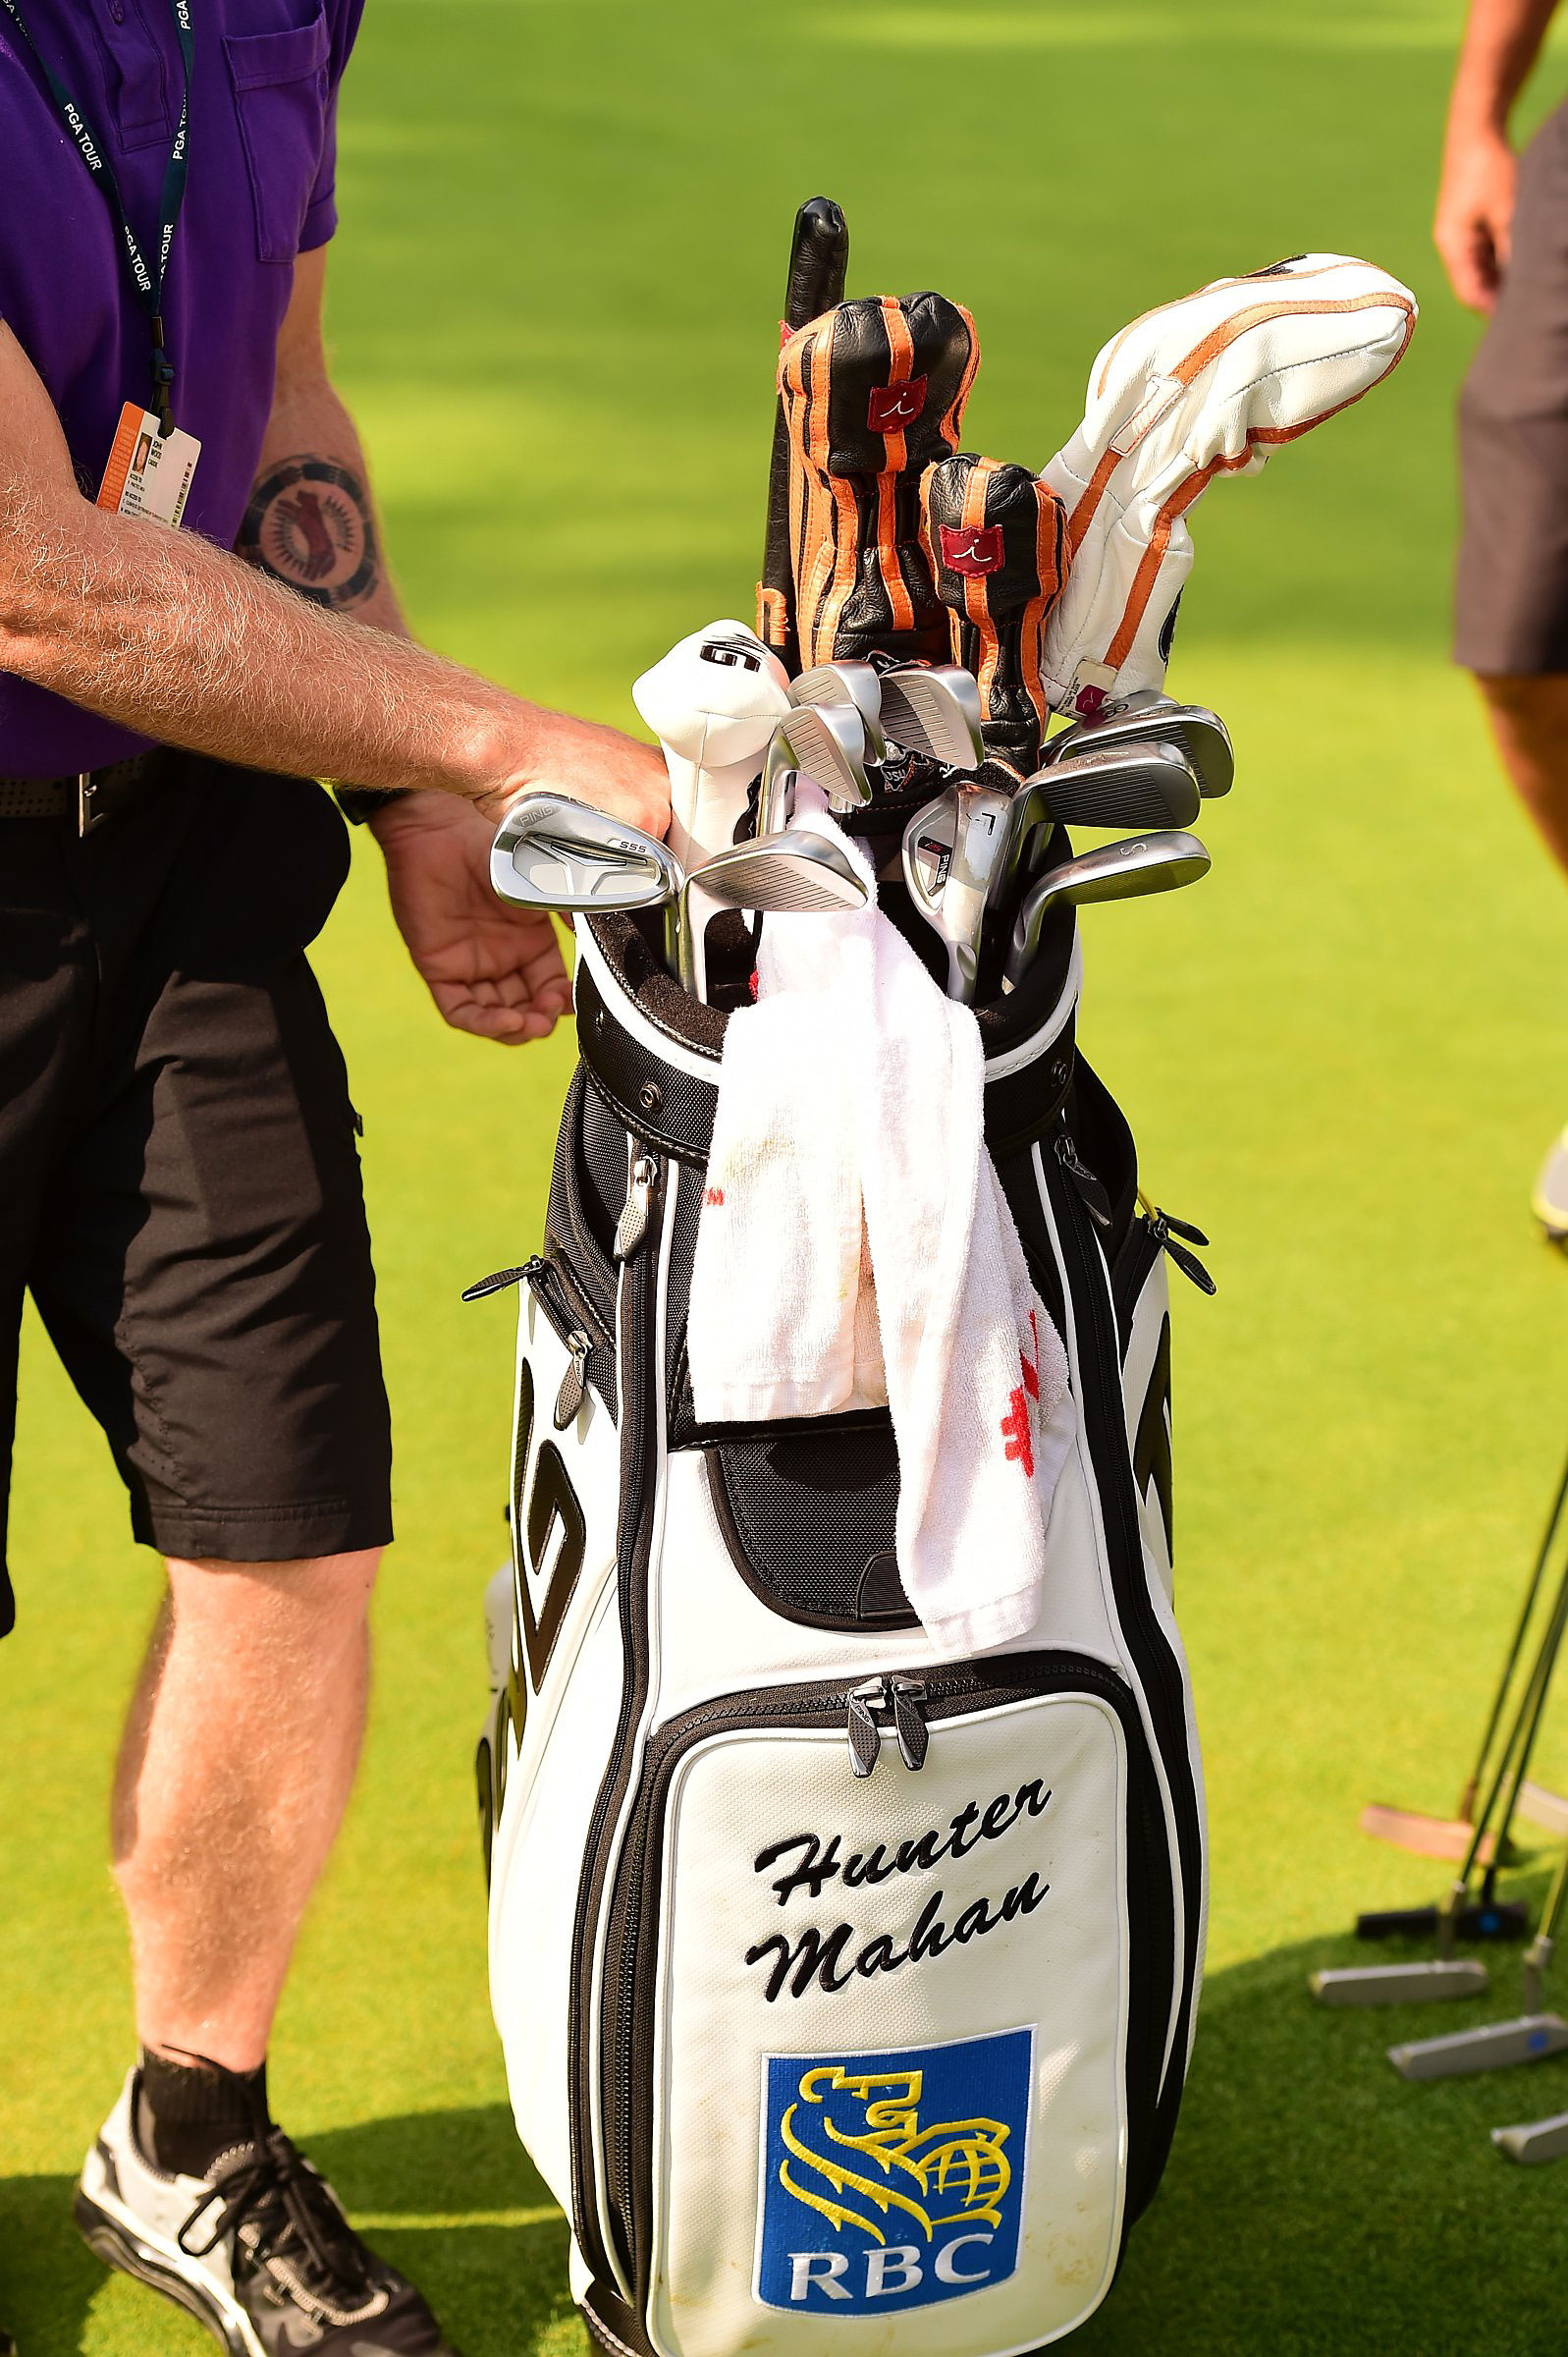 PING staffer Hunter Mahan is playing S55 irons and an i20 L-wedge, among various other gear.